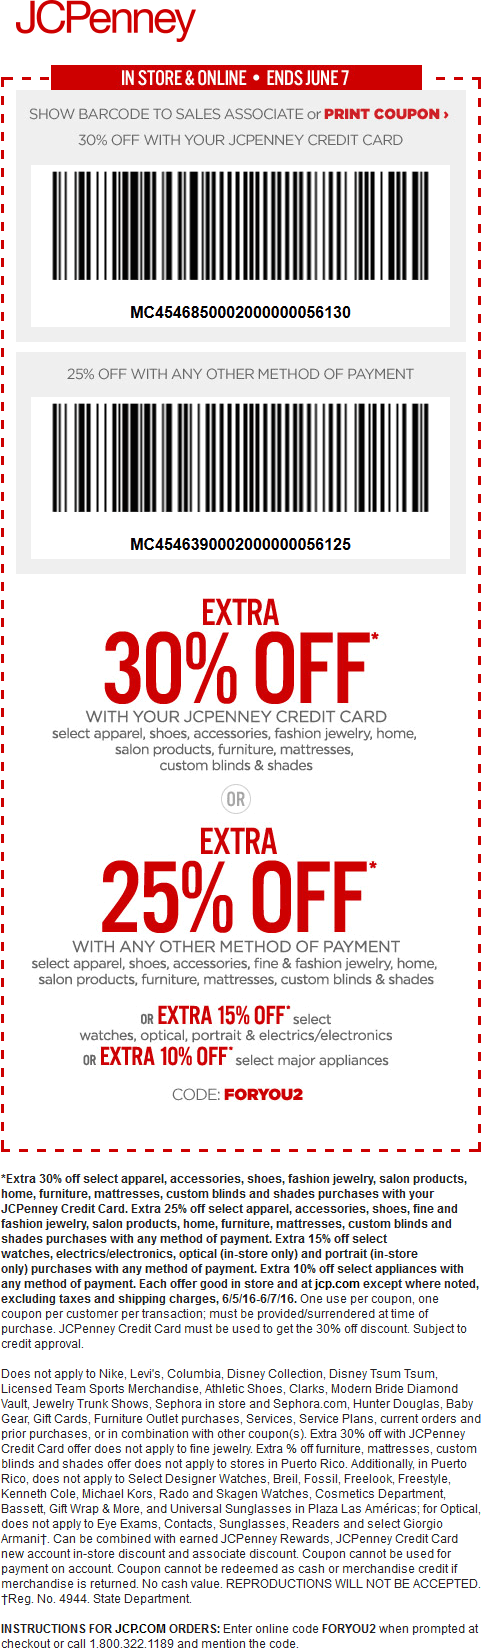 JCPenney Coupon May 2017 Extra 25% off at JCPenney, or online via promo code FORYOU2